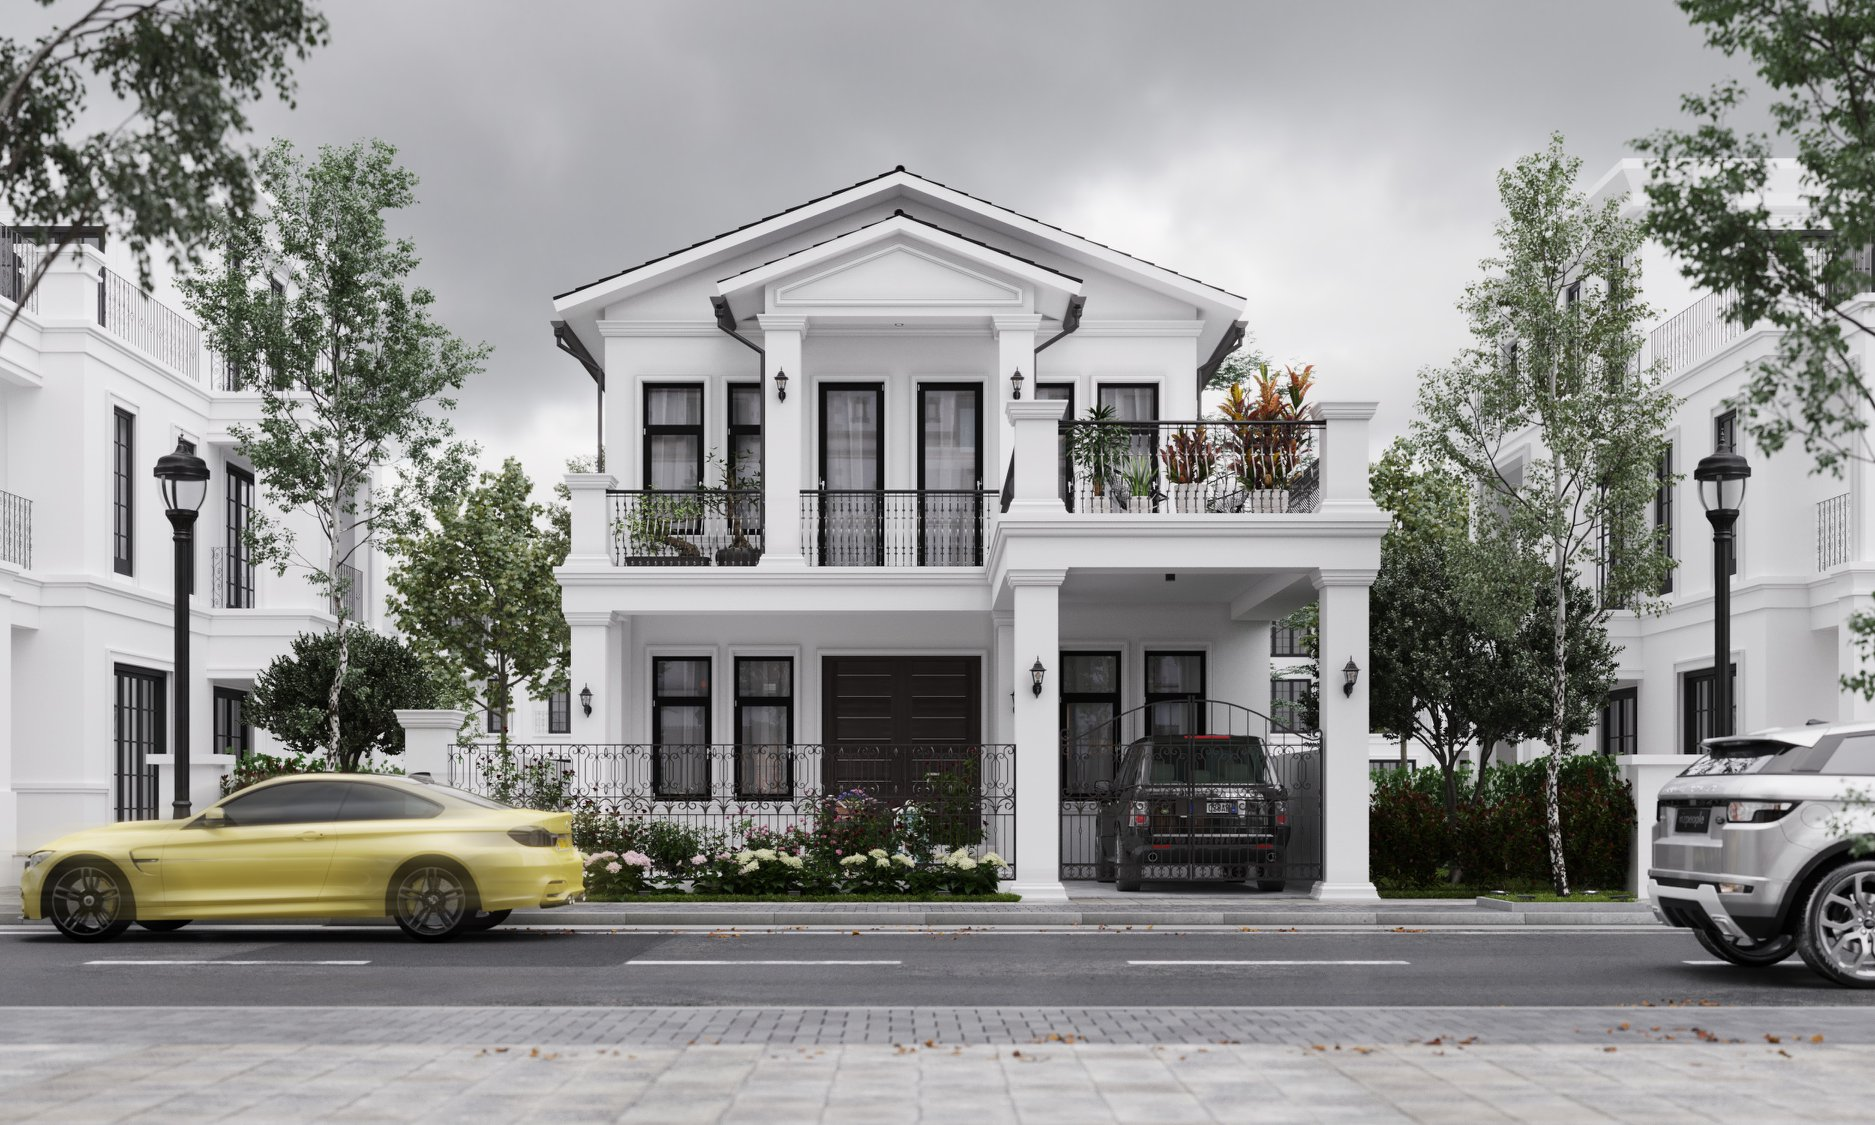 Render Exterior By 3d Max,Sketchup,Lumion,Revit.